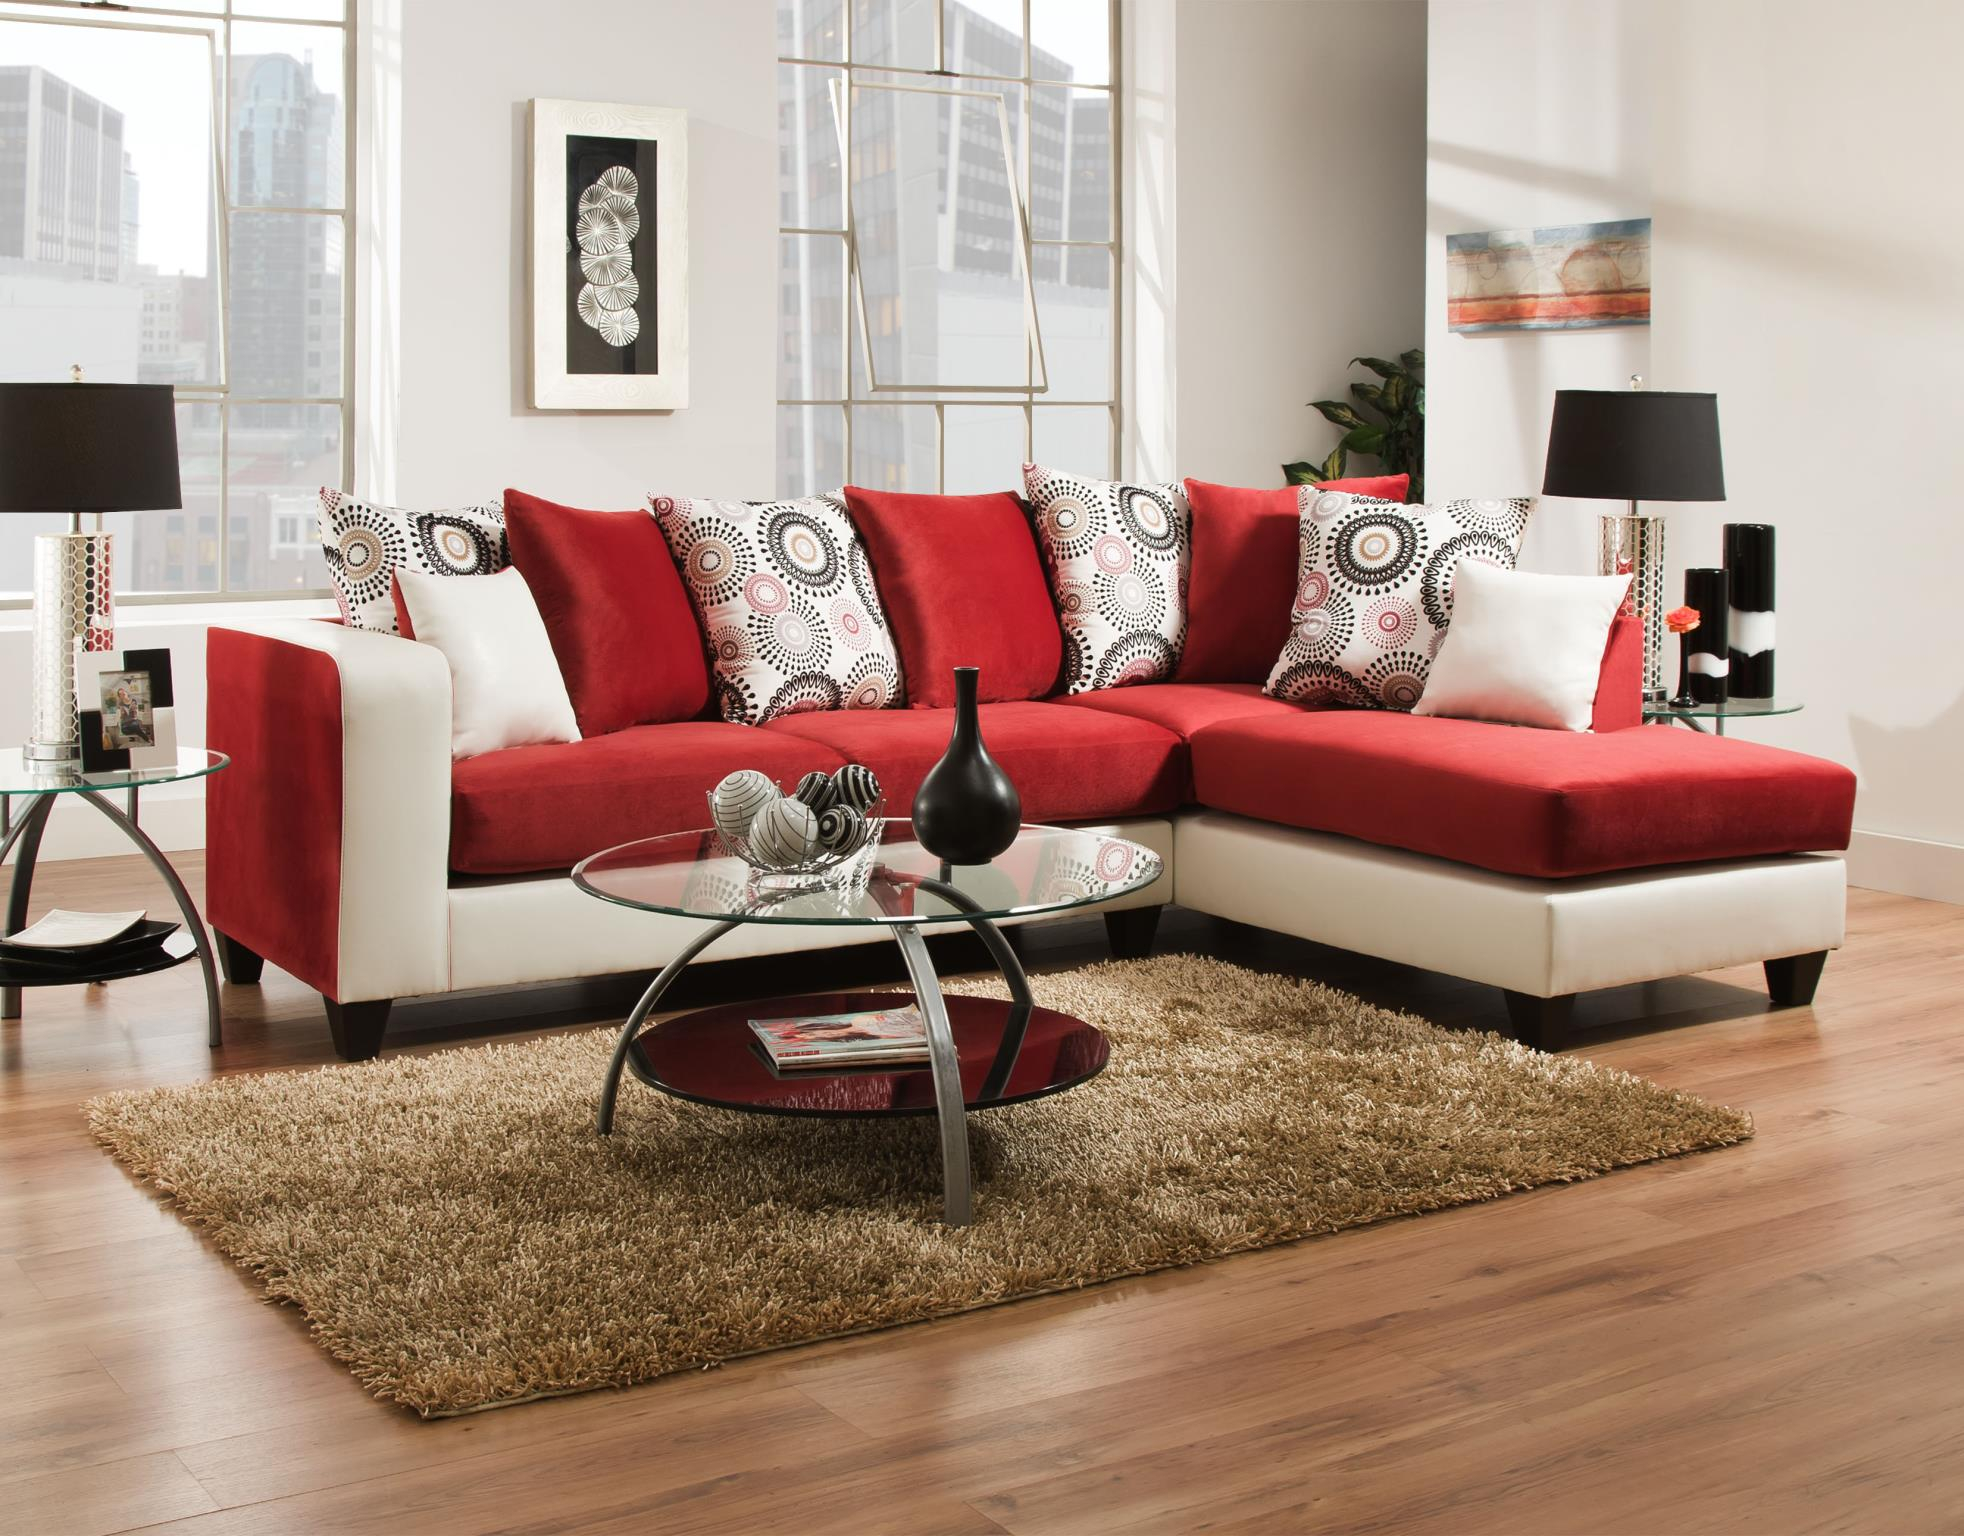 Furniture Cheap Sectional Sofas Under 300 For Simple Your Sofas in 13 Smart Ways How to Upgrade Cheap Living Room Sets Under 200